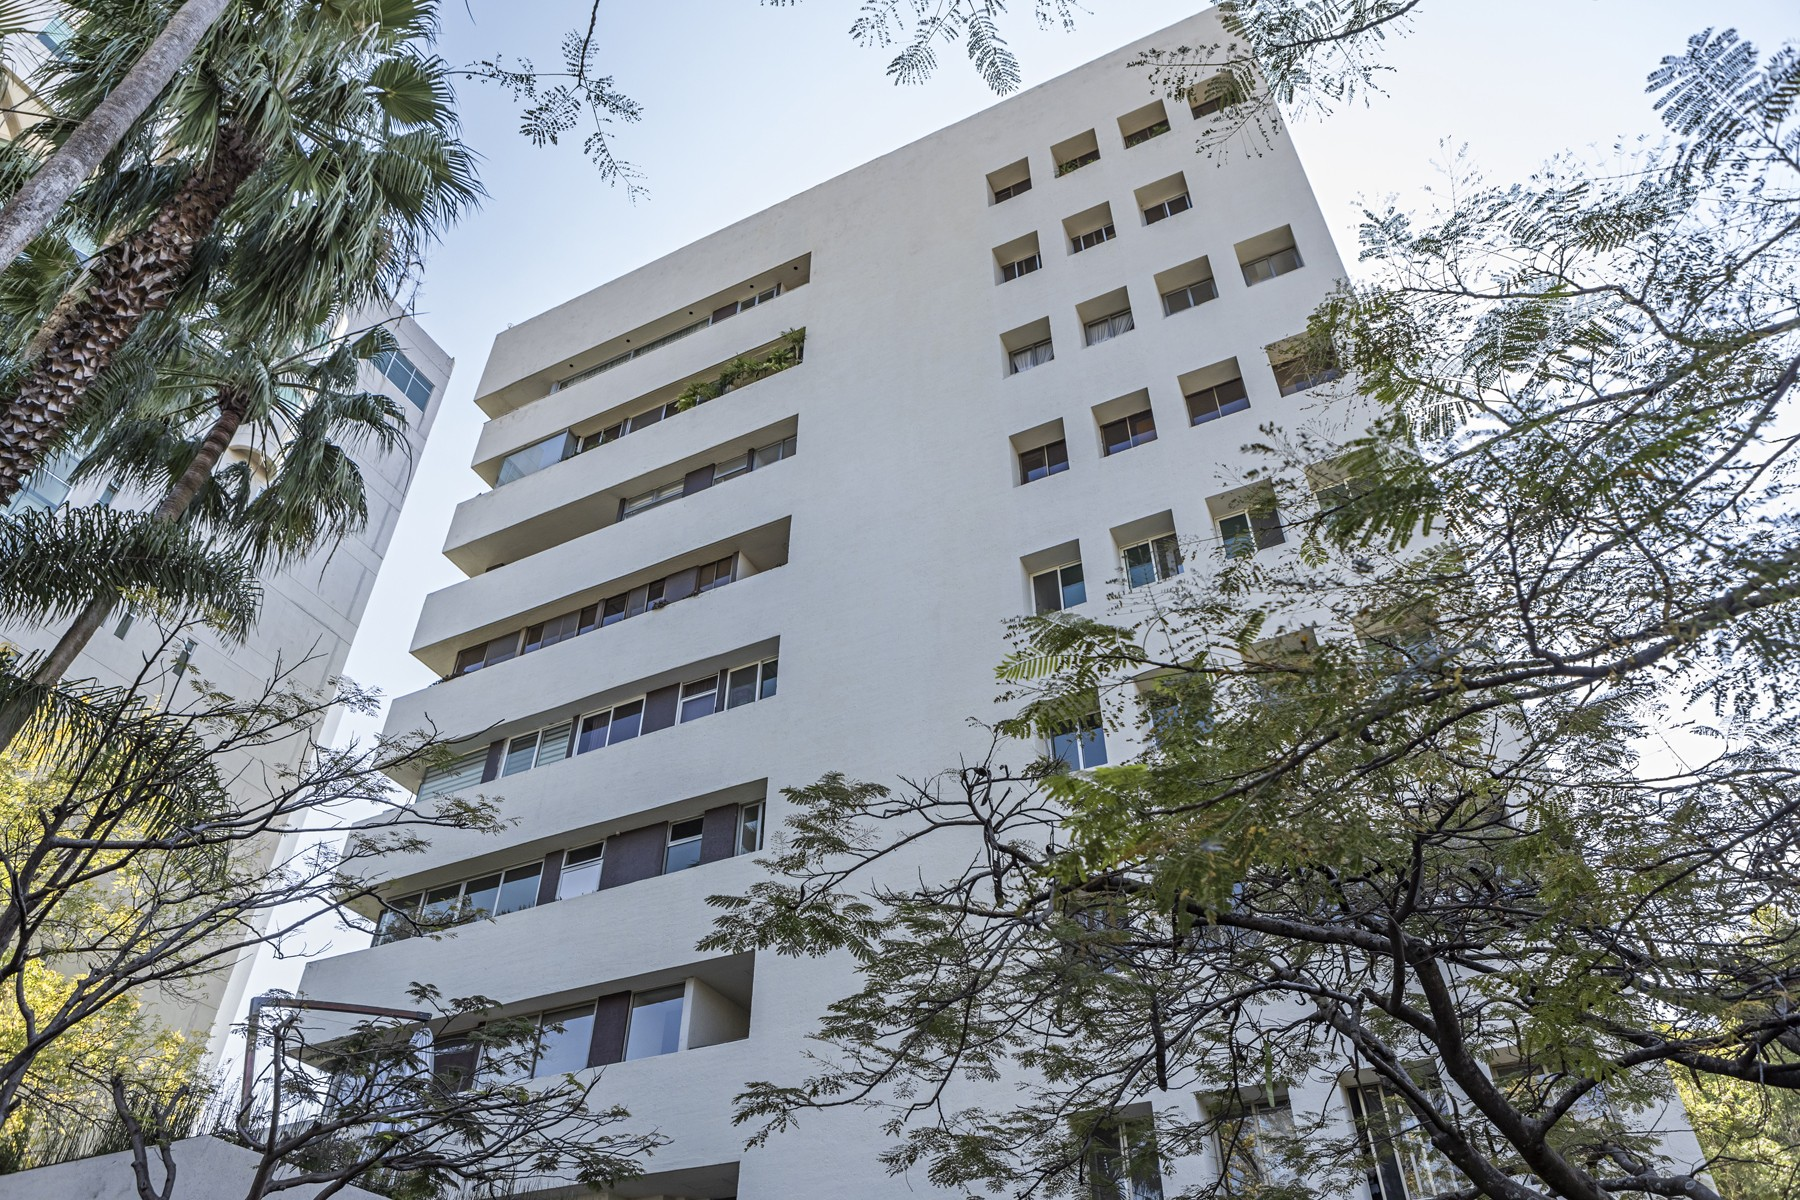 Apartment for Sale at Piso 3, Río de la Plata Rio de la Plata 2509 Guadalajara, 44660 Mexico